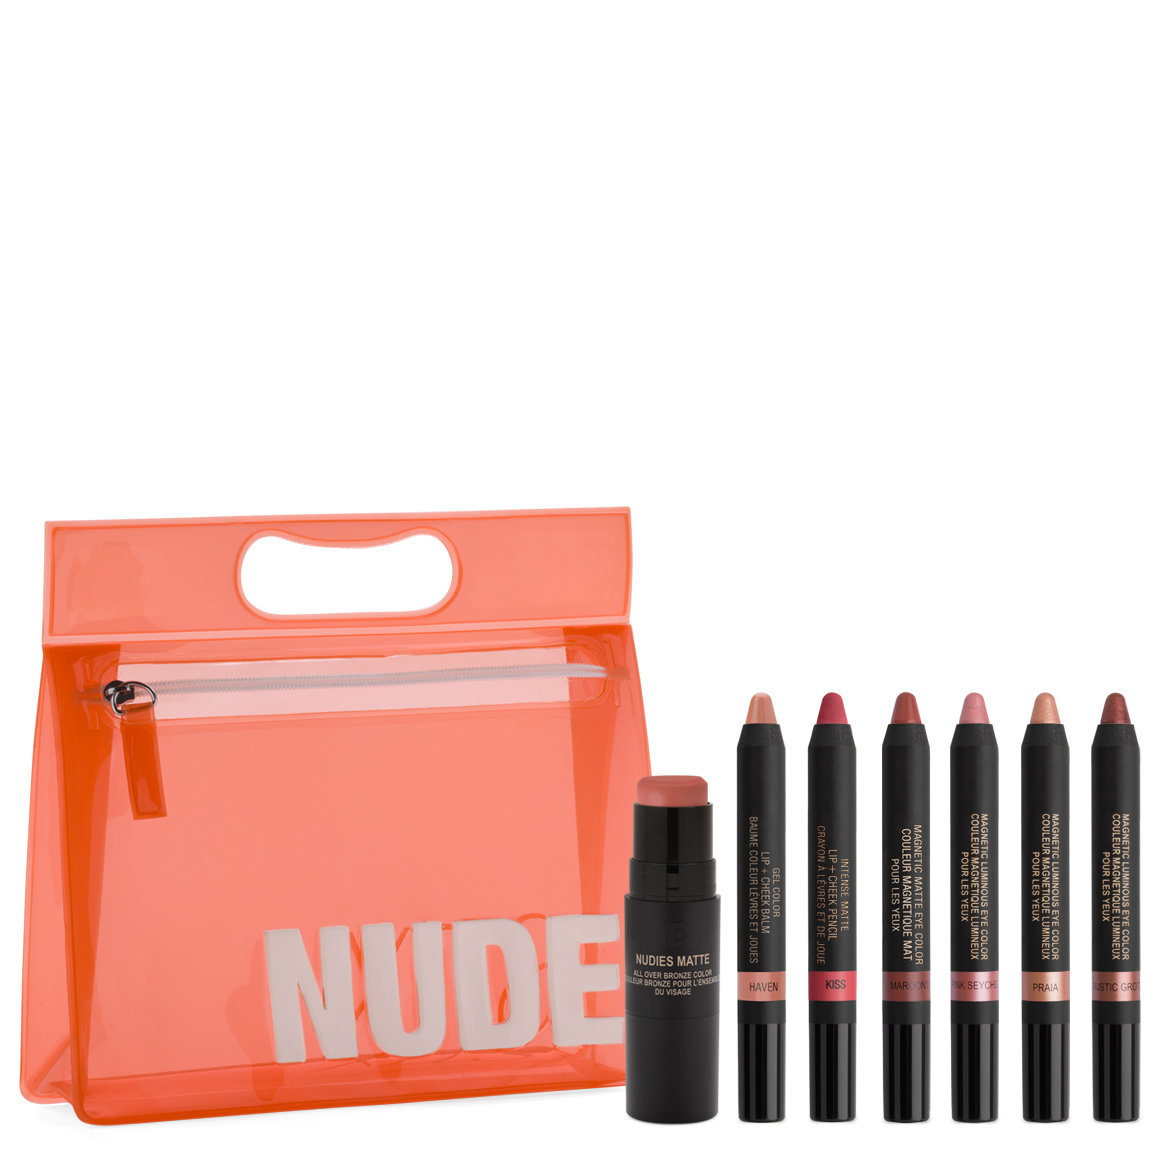 Nudestix Nude Beach Kit product smear.